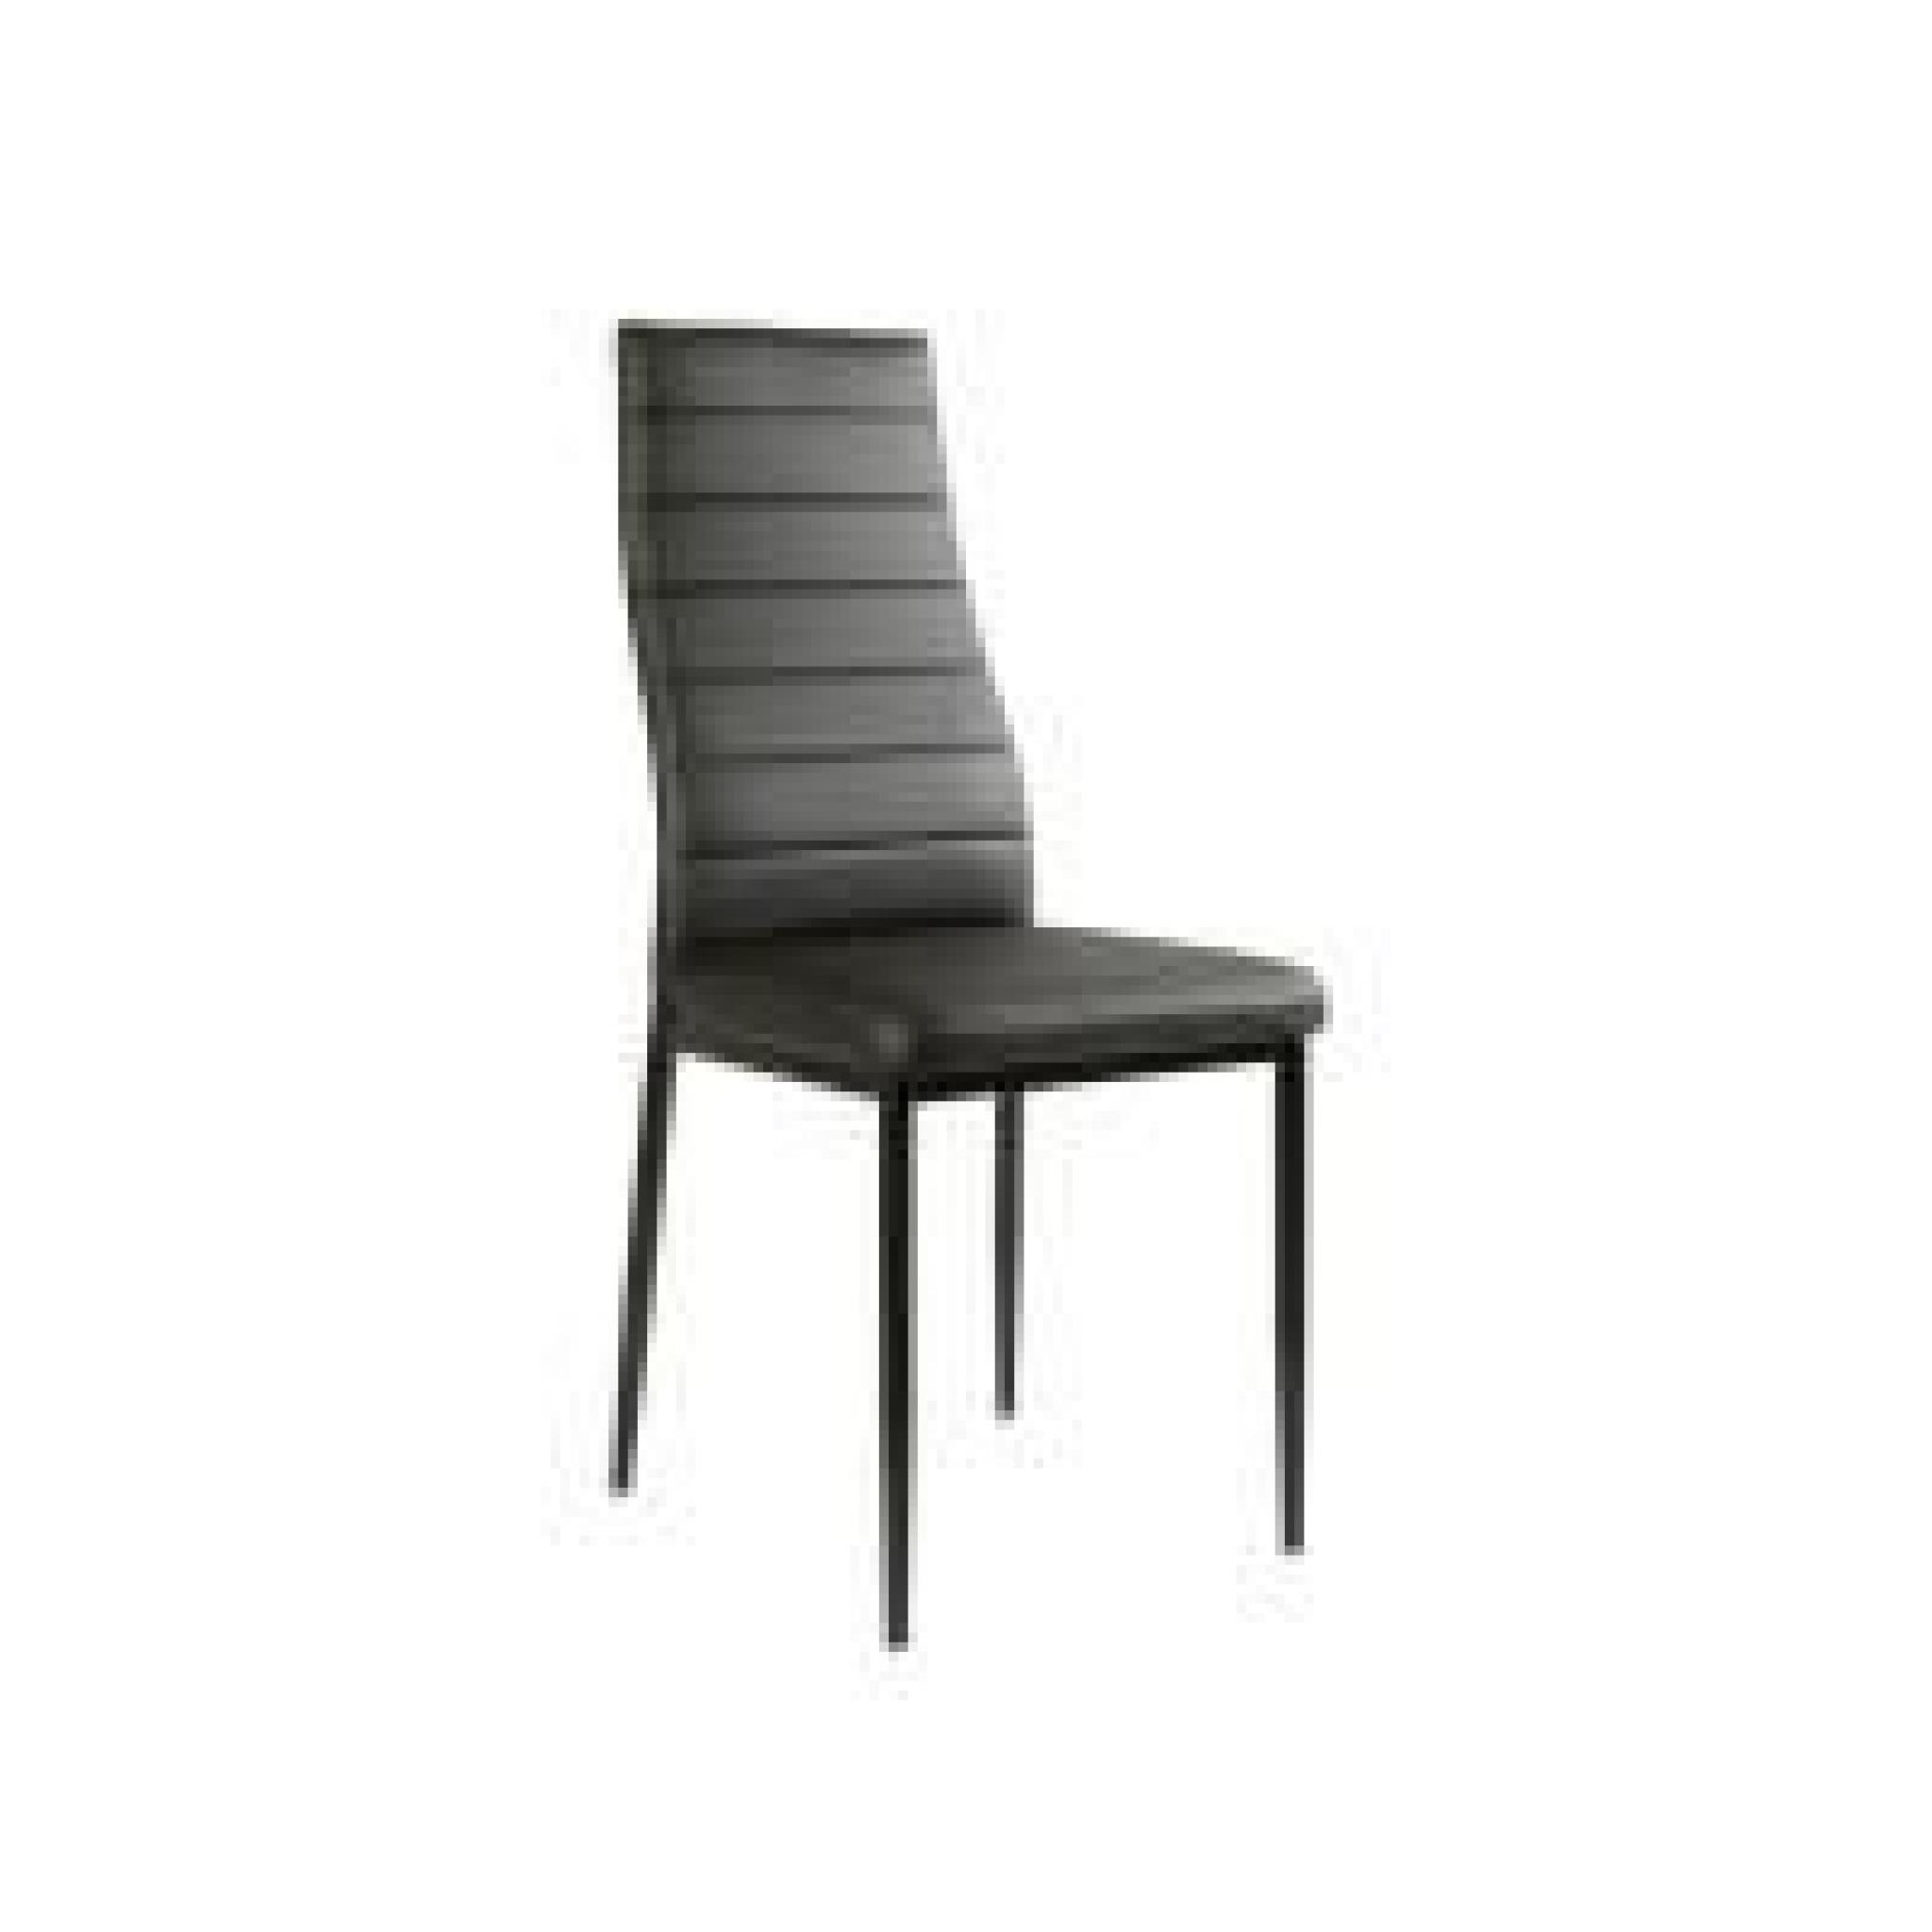 Table en verre 6 chaises noir malia achat vente table for Table en verre 6 chaises